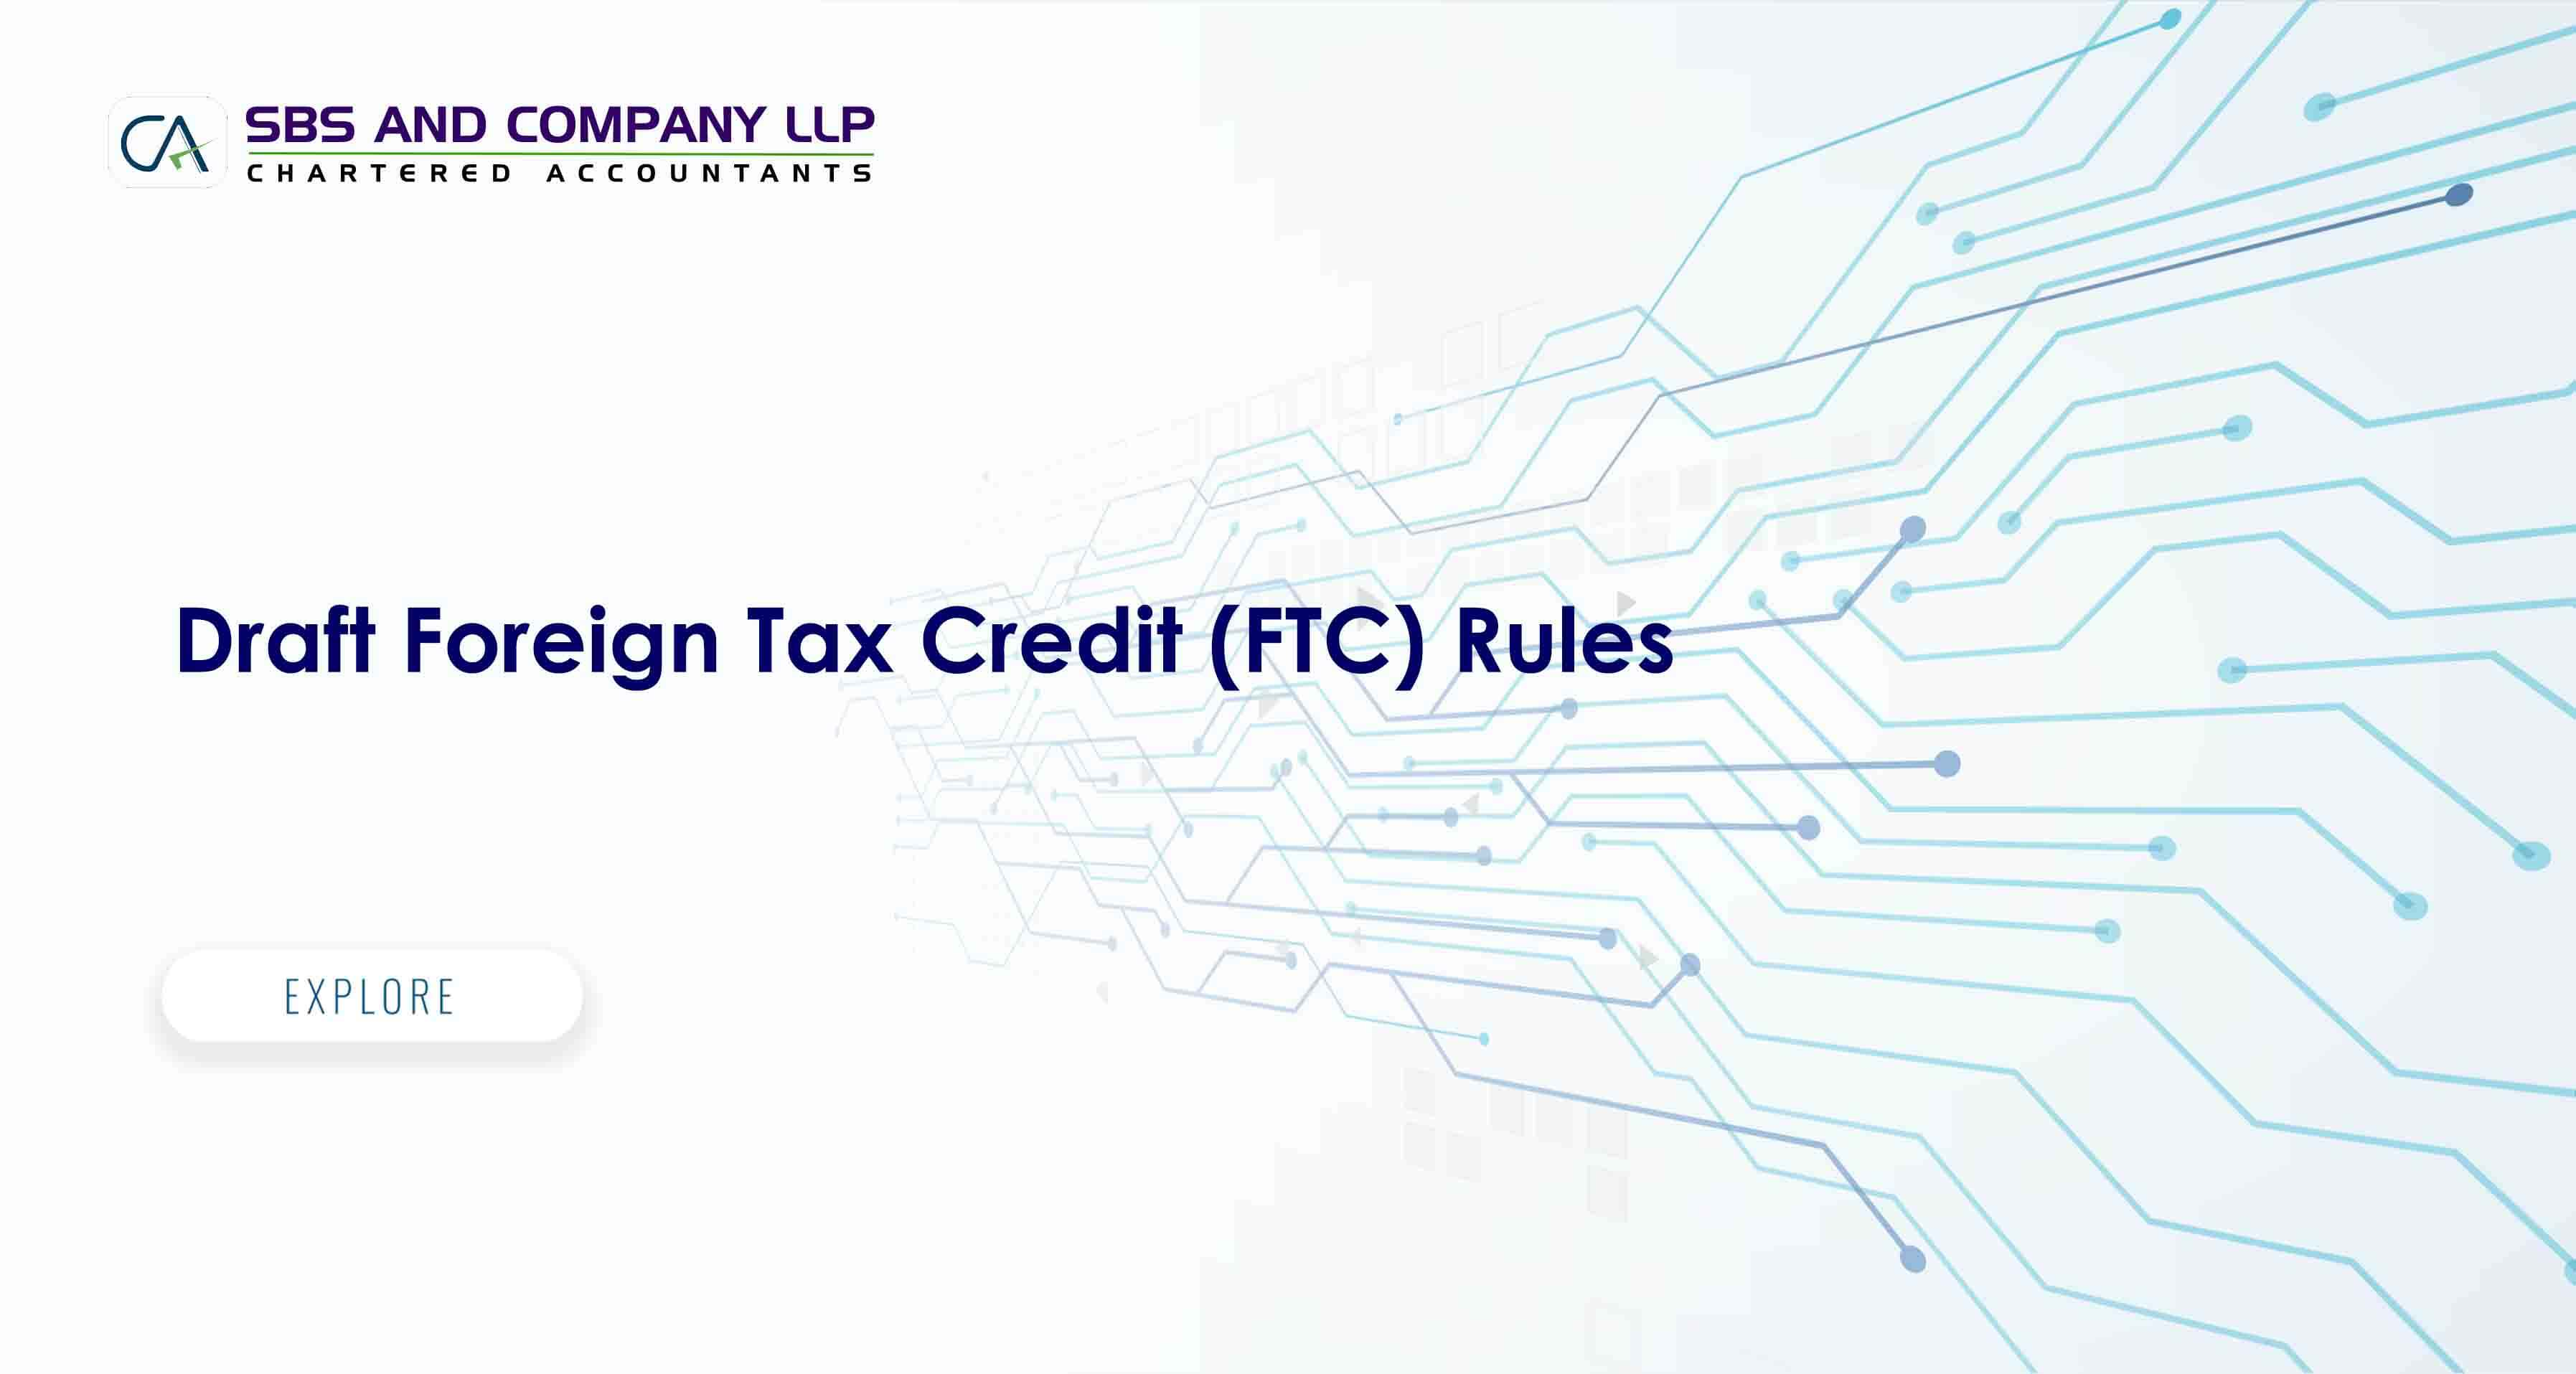 Draft Foreign Tax Credit (FTC) Rules